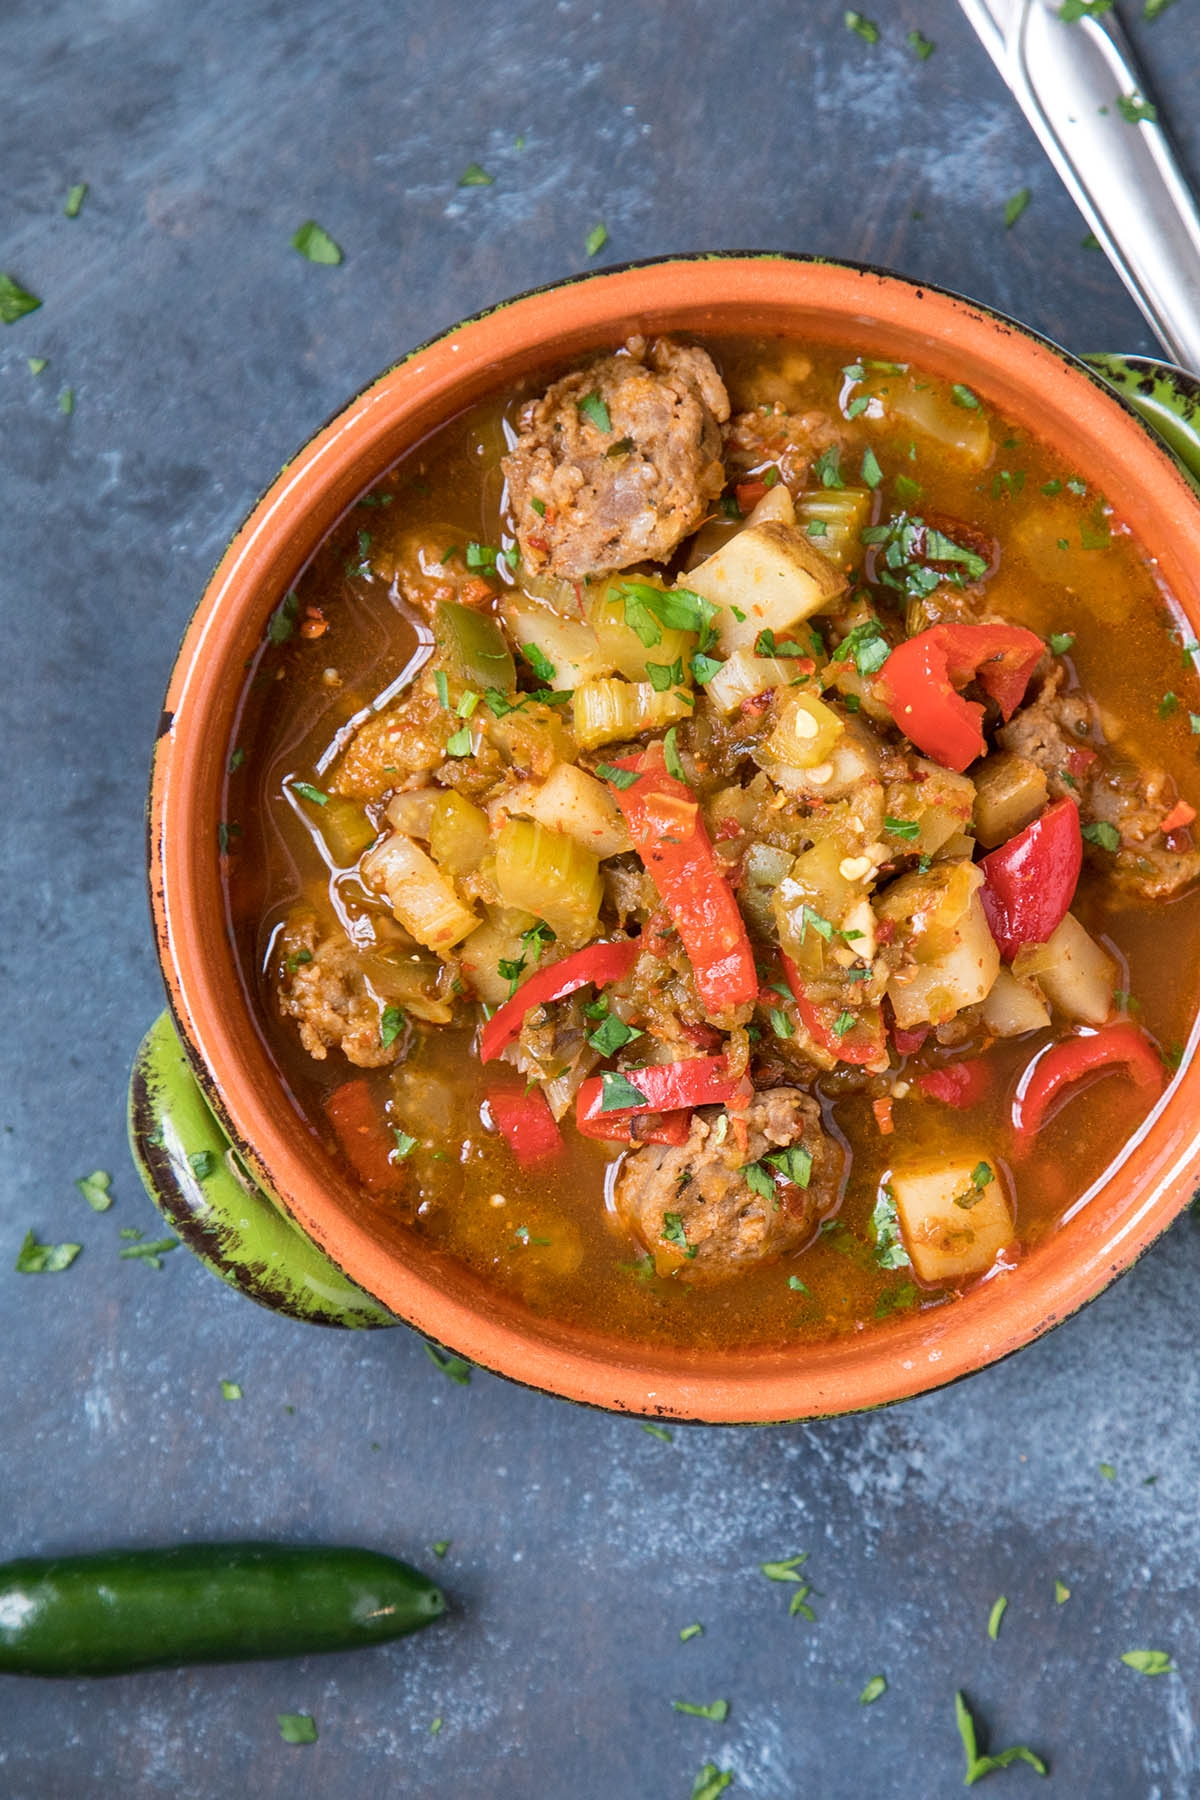 Spicy Sausage Soup with Potato